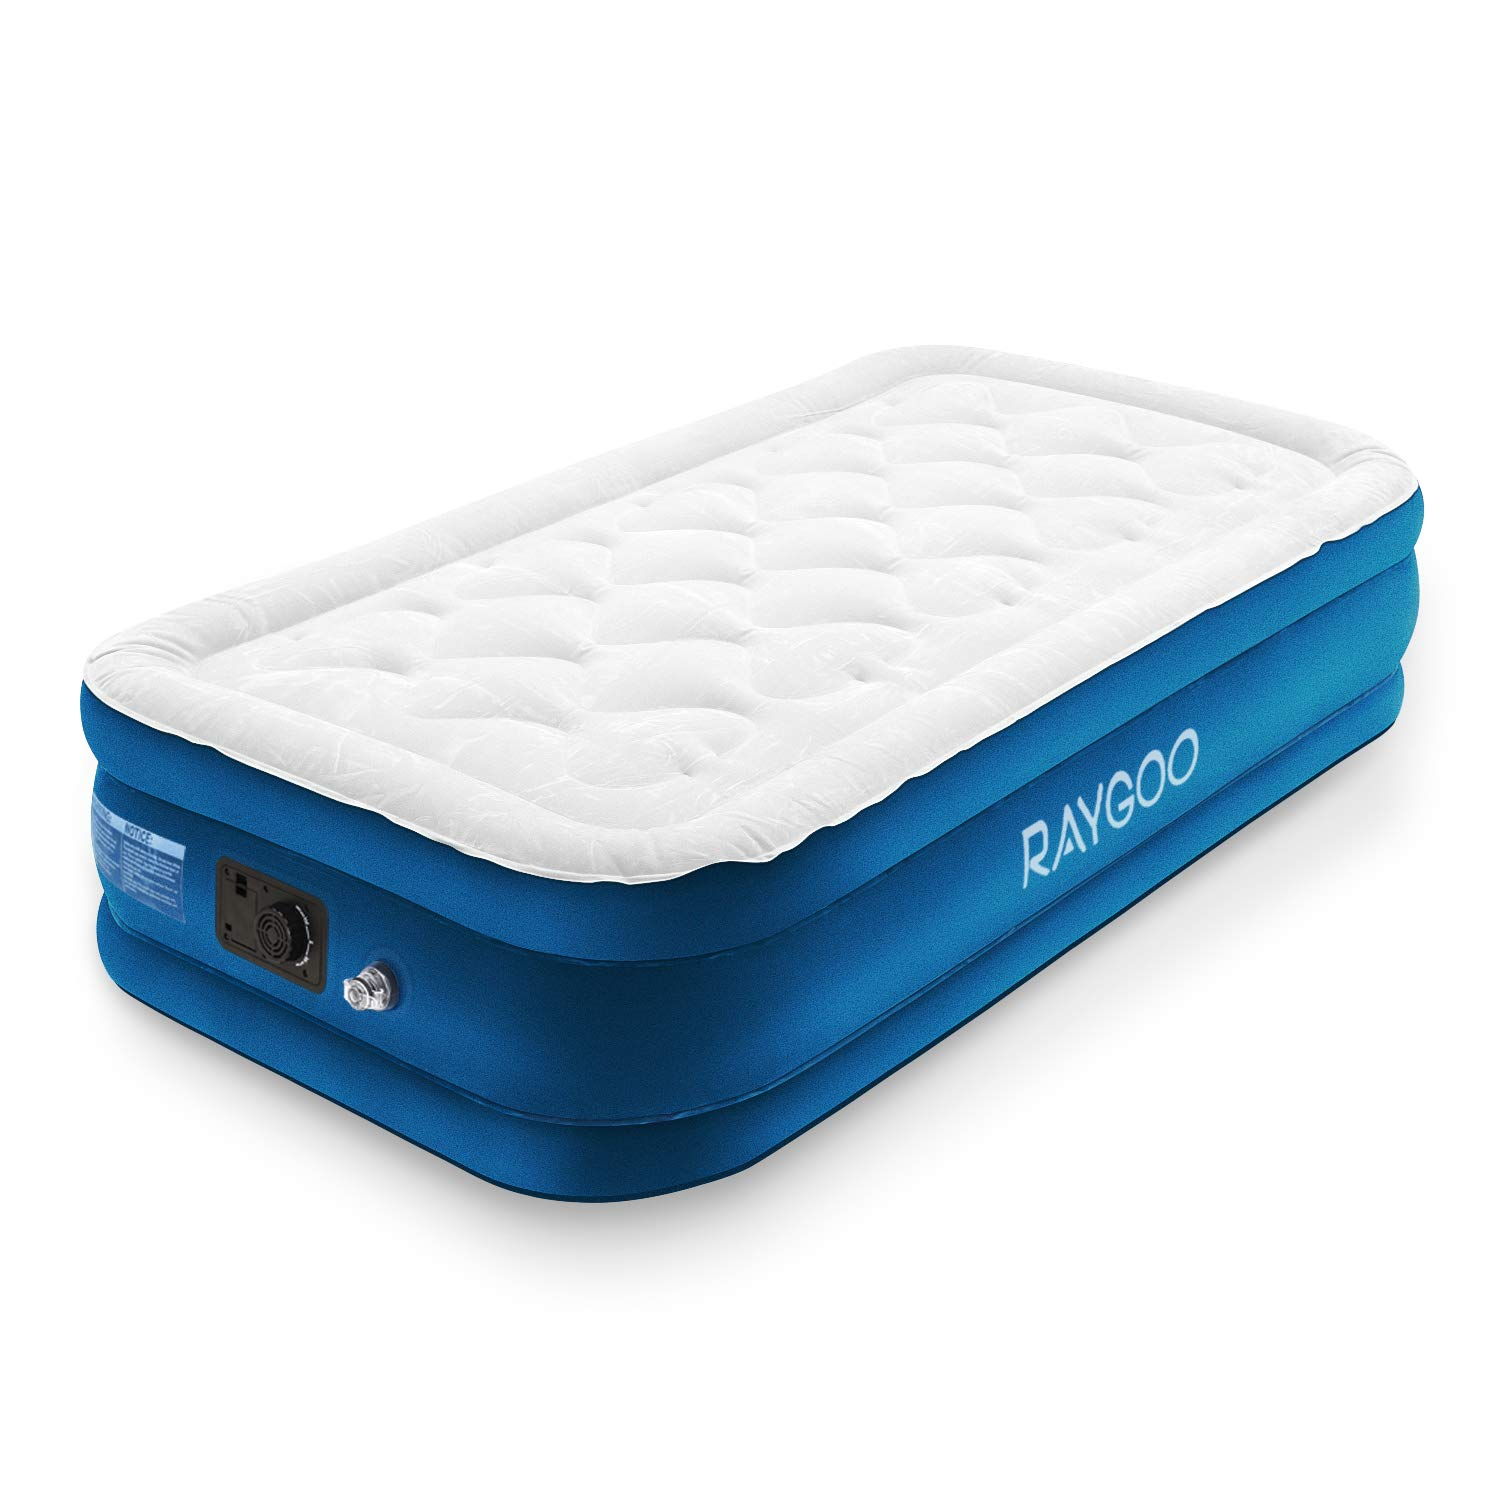 Air Mattress Queen Size Airbed Luxury Raised Inflatable Mattress with Built-in Electric Pump, Elevated Raised Air Mattress Quilt Top, Height 20'', 3-Year Warranty